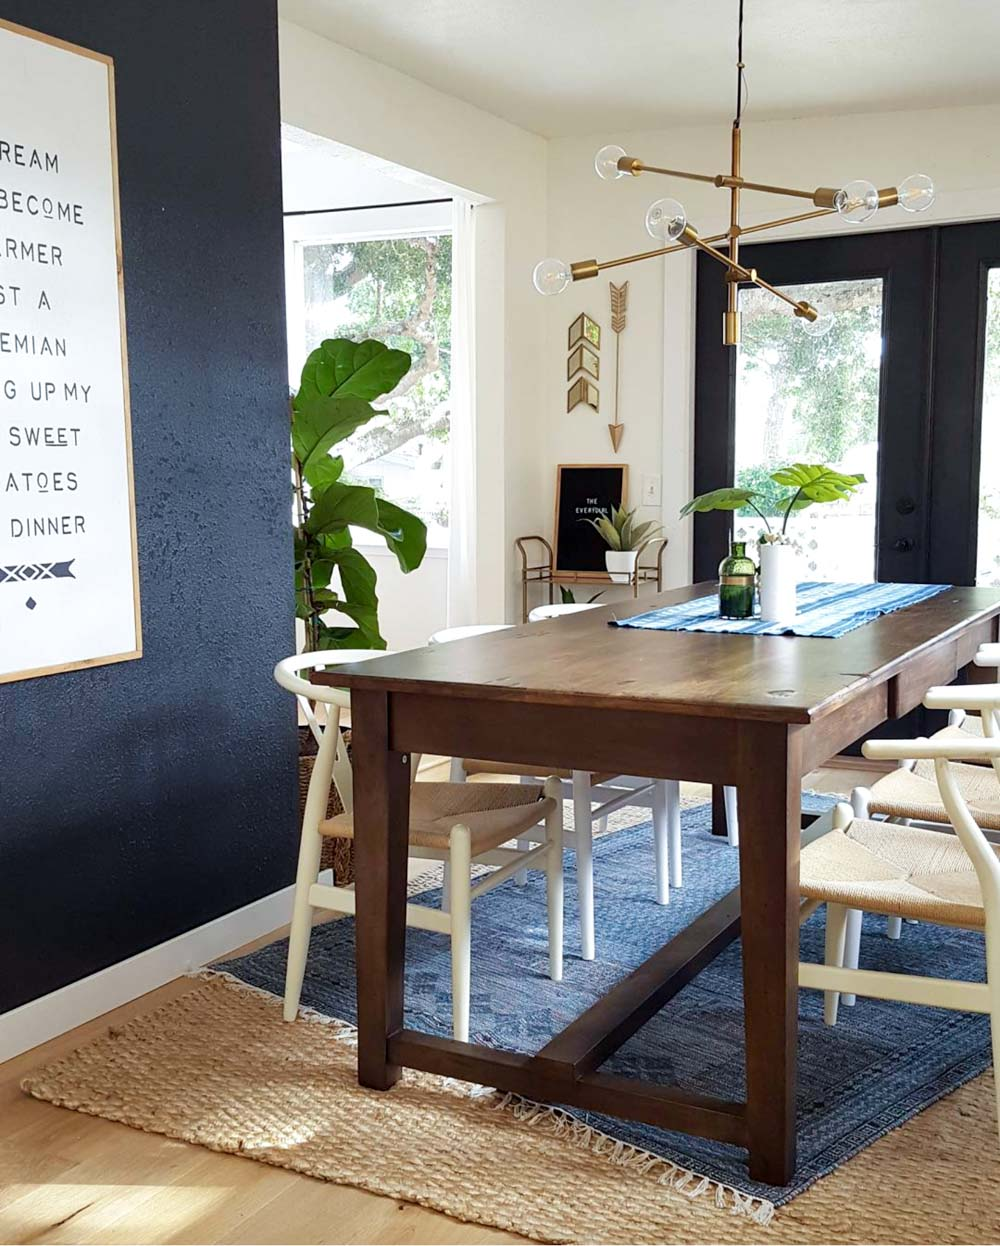 Before & After: A West Coast Renovation That Was Meant to Be | Design*Sponge